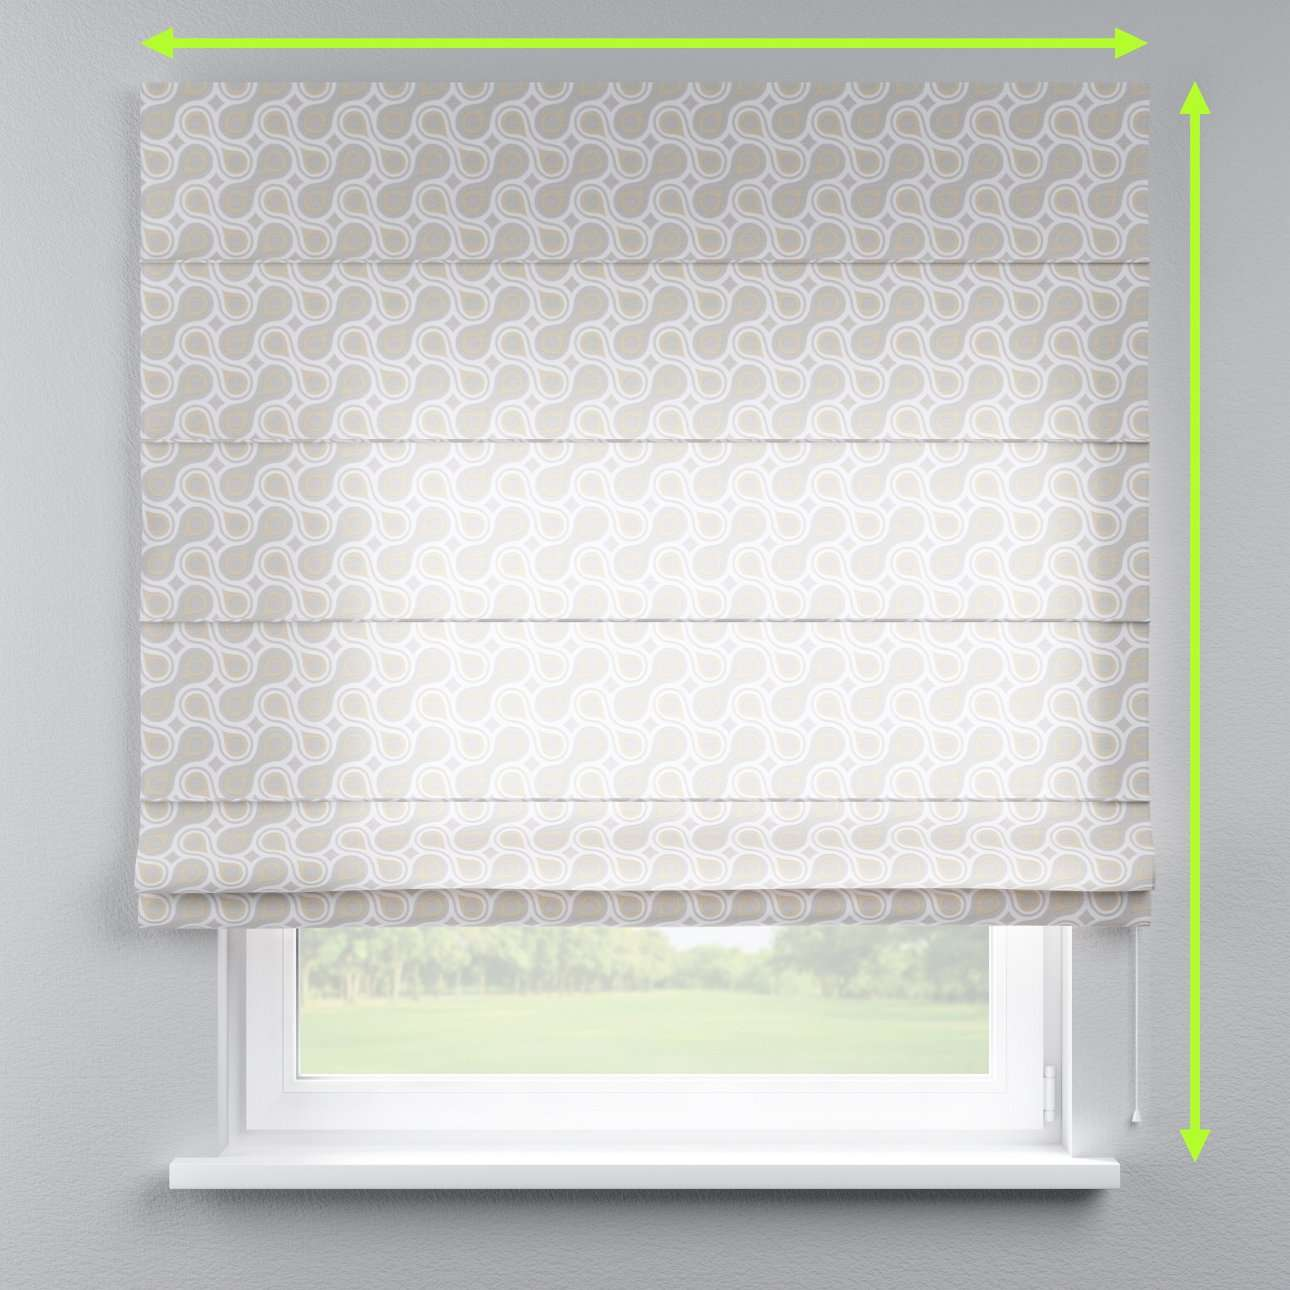 Capri roman blind in collection Flowers, fabric: 311-11